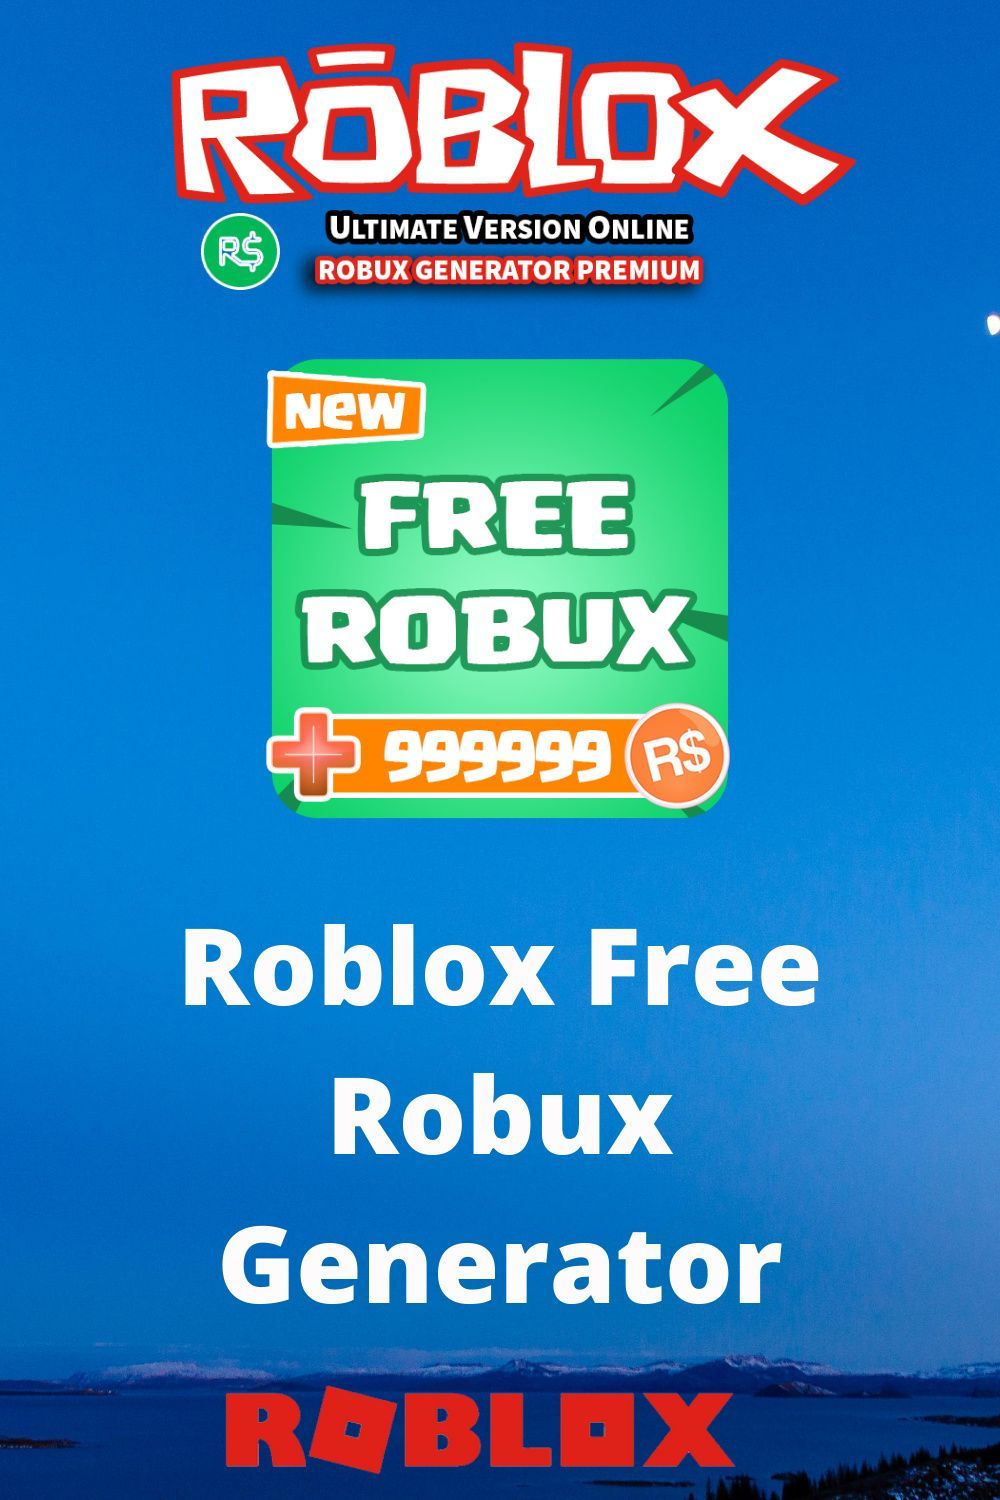 Roblox Free Robux Generator iPhone in 2020 Roblox